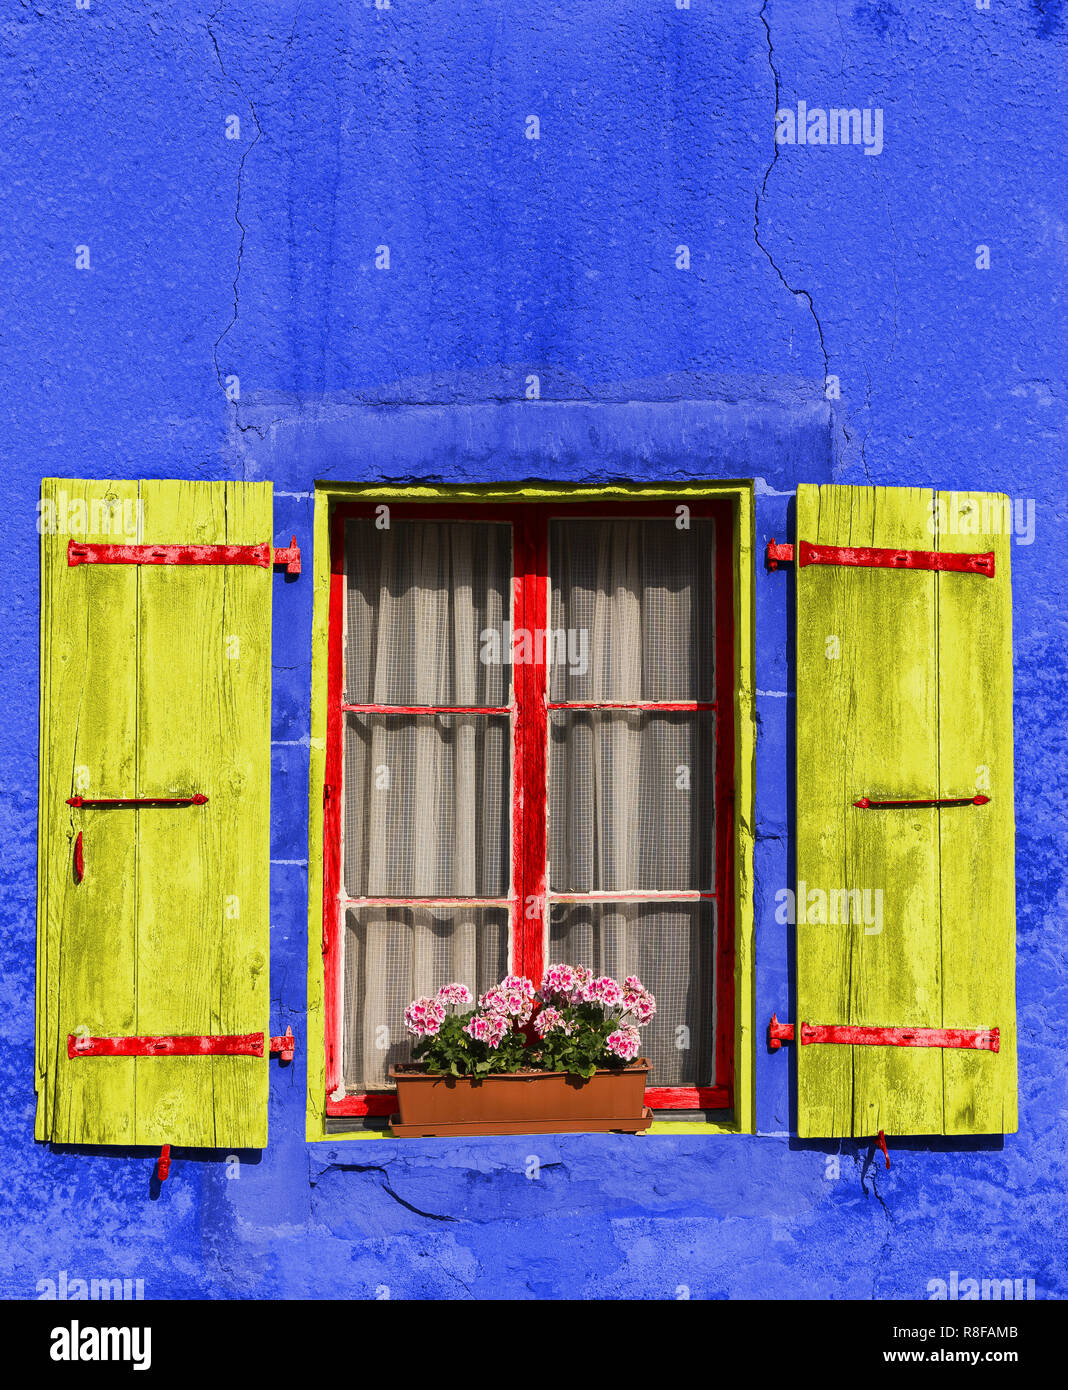 Beautiful old window with red flowers on the old rusty house. Blue facade. City of Nyon, canton Vaud Switzerland Stock Photo